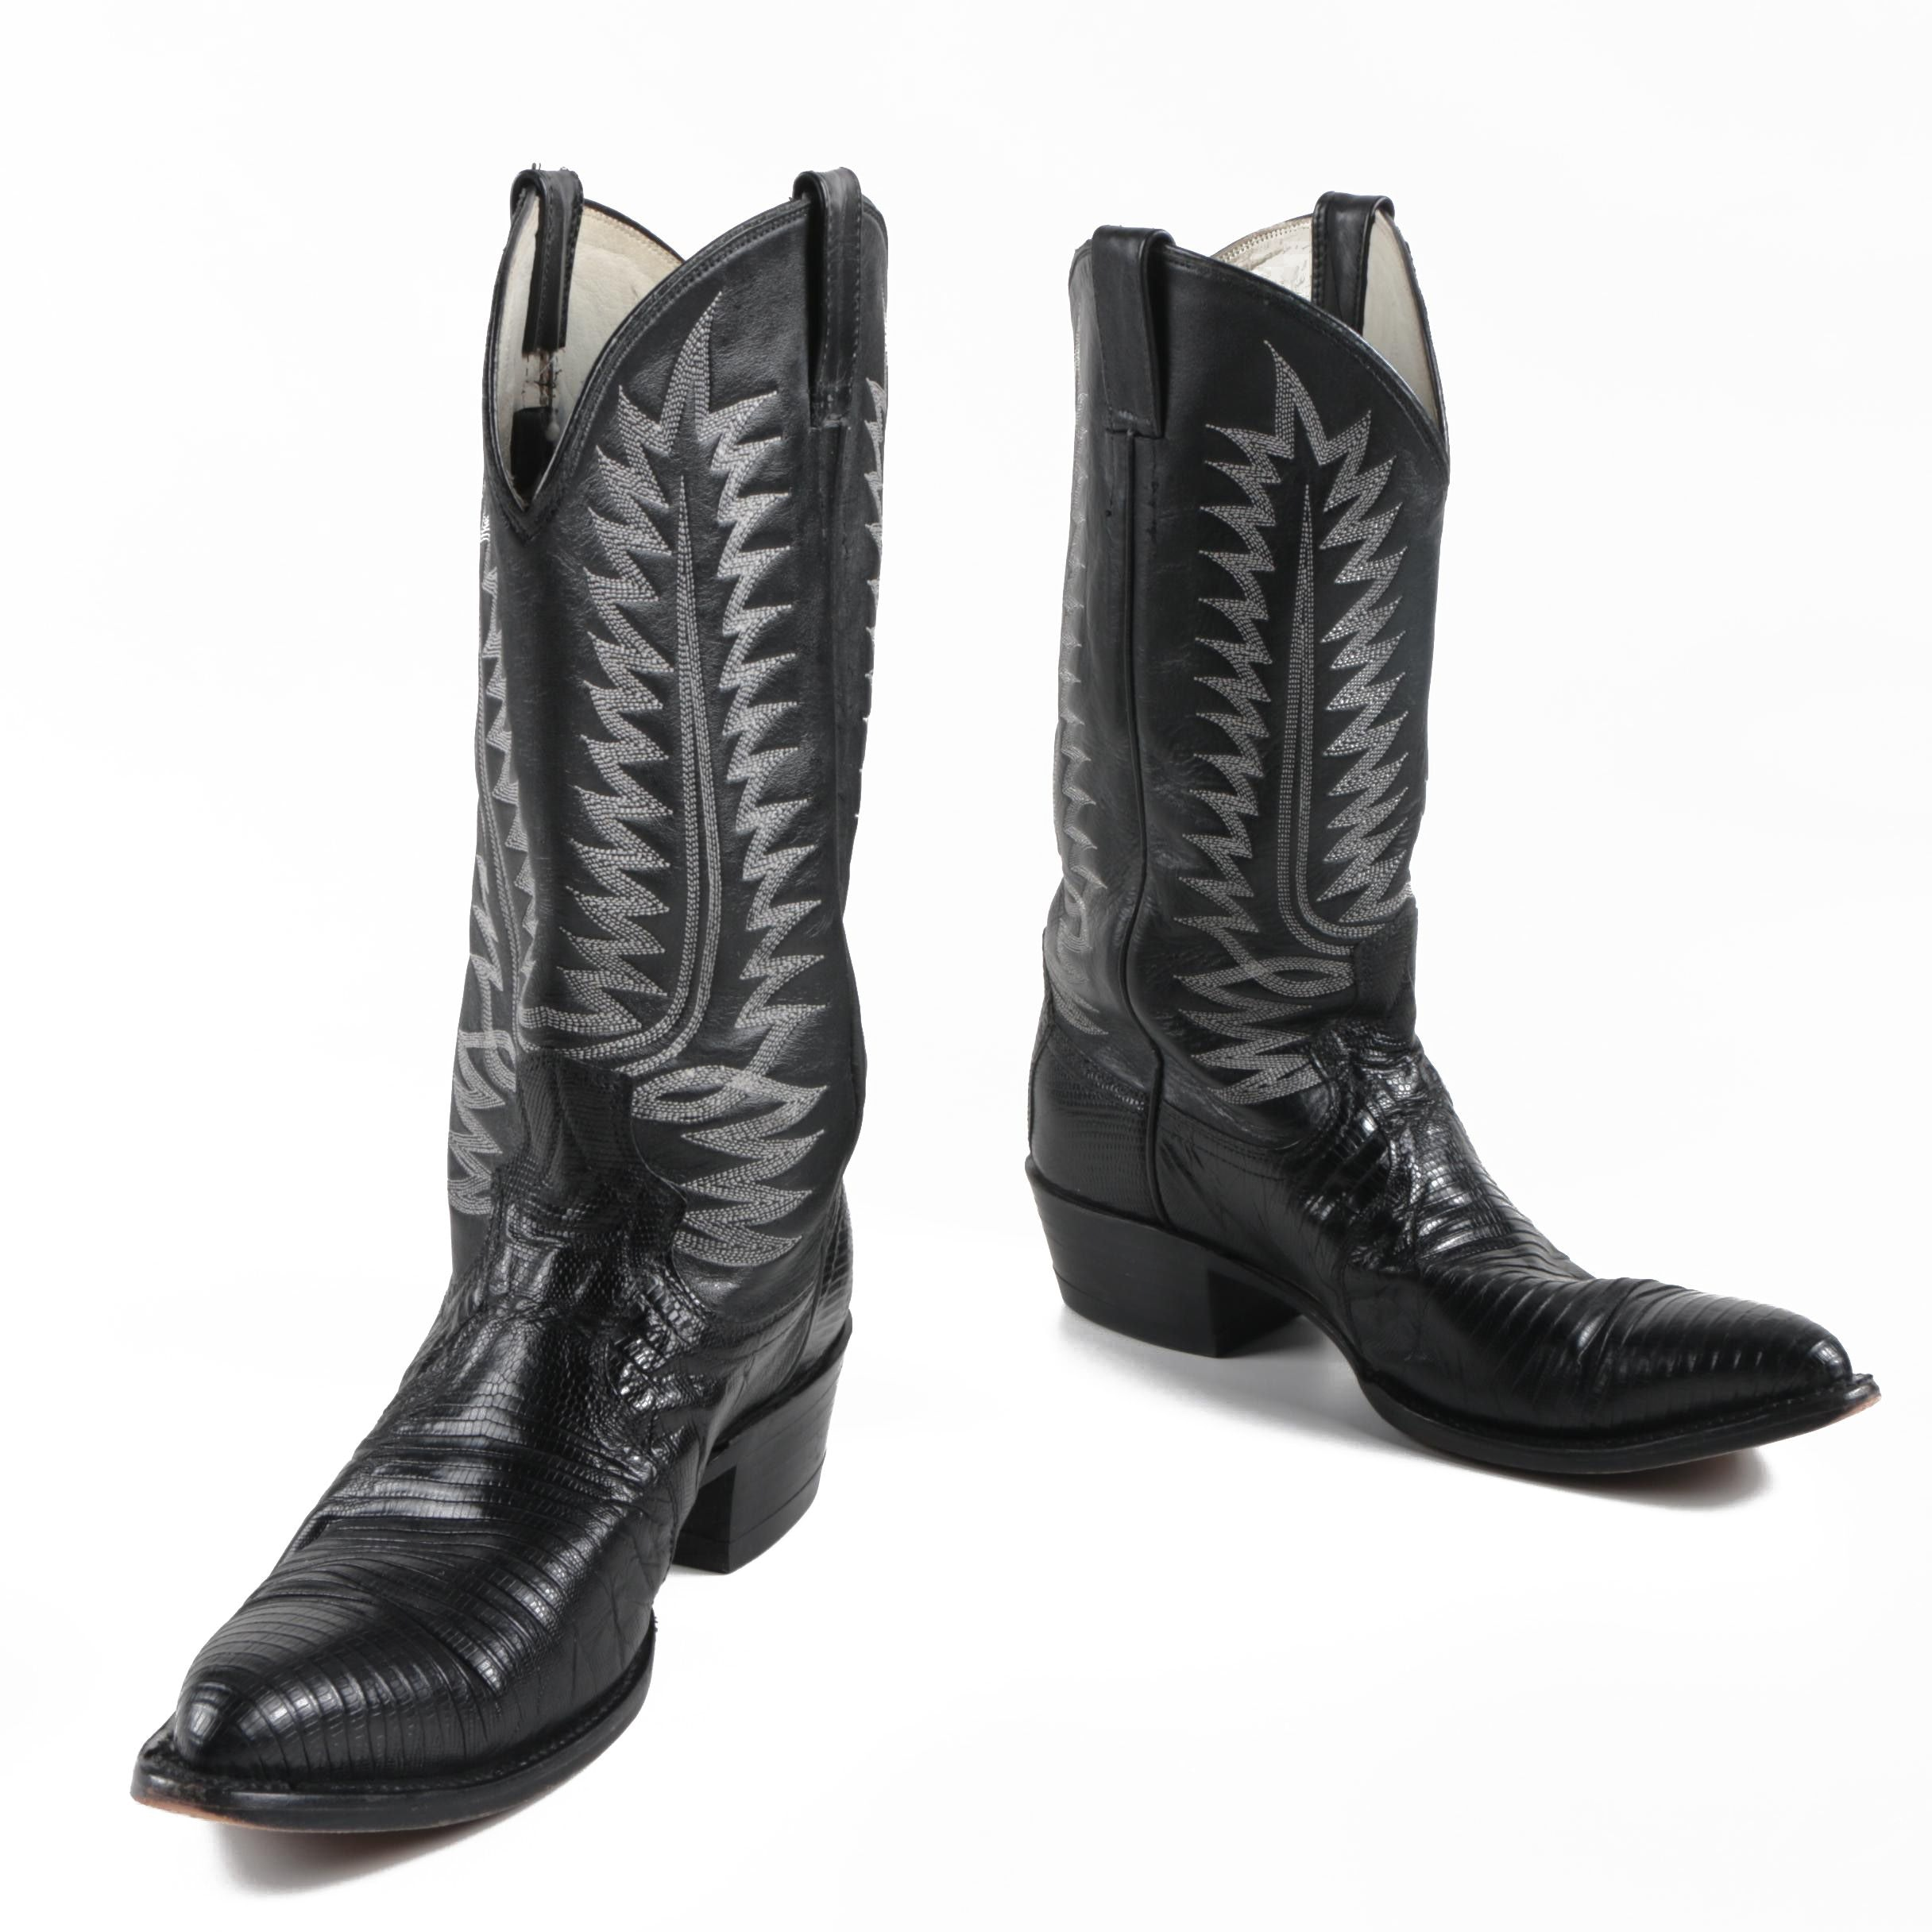 Men's Amazonas Black Lizard Cowboy Boots